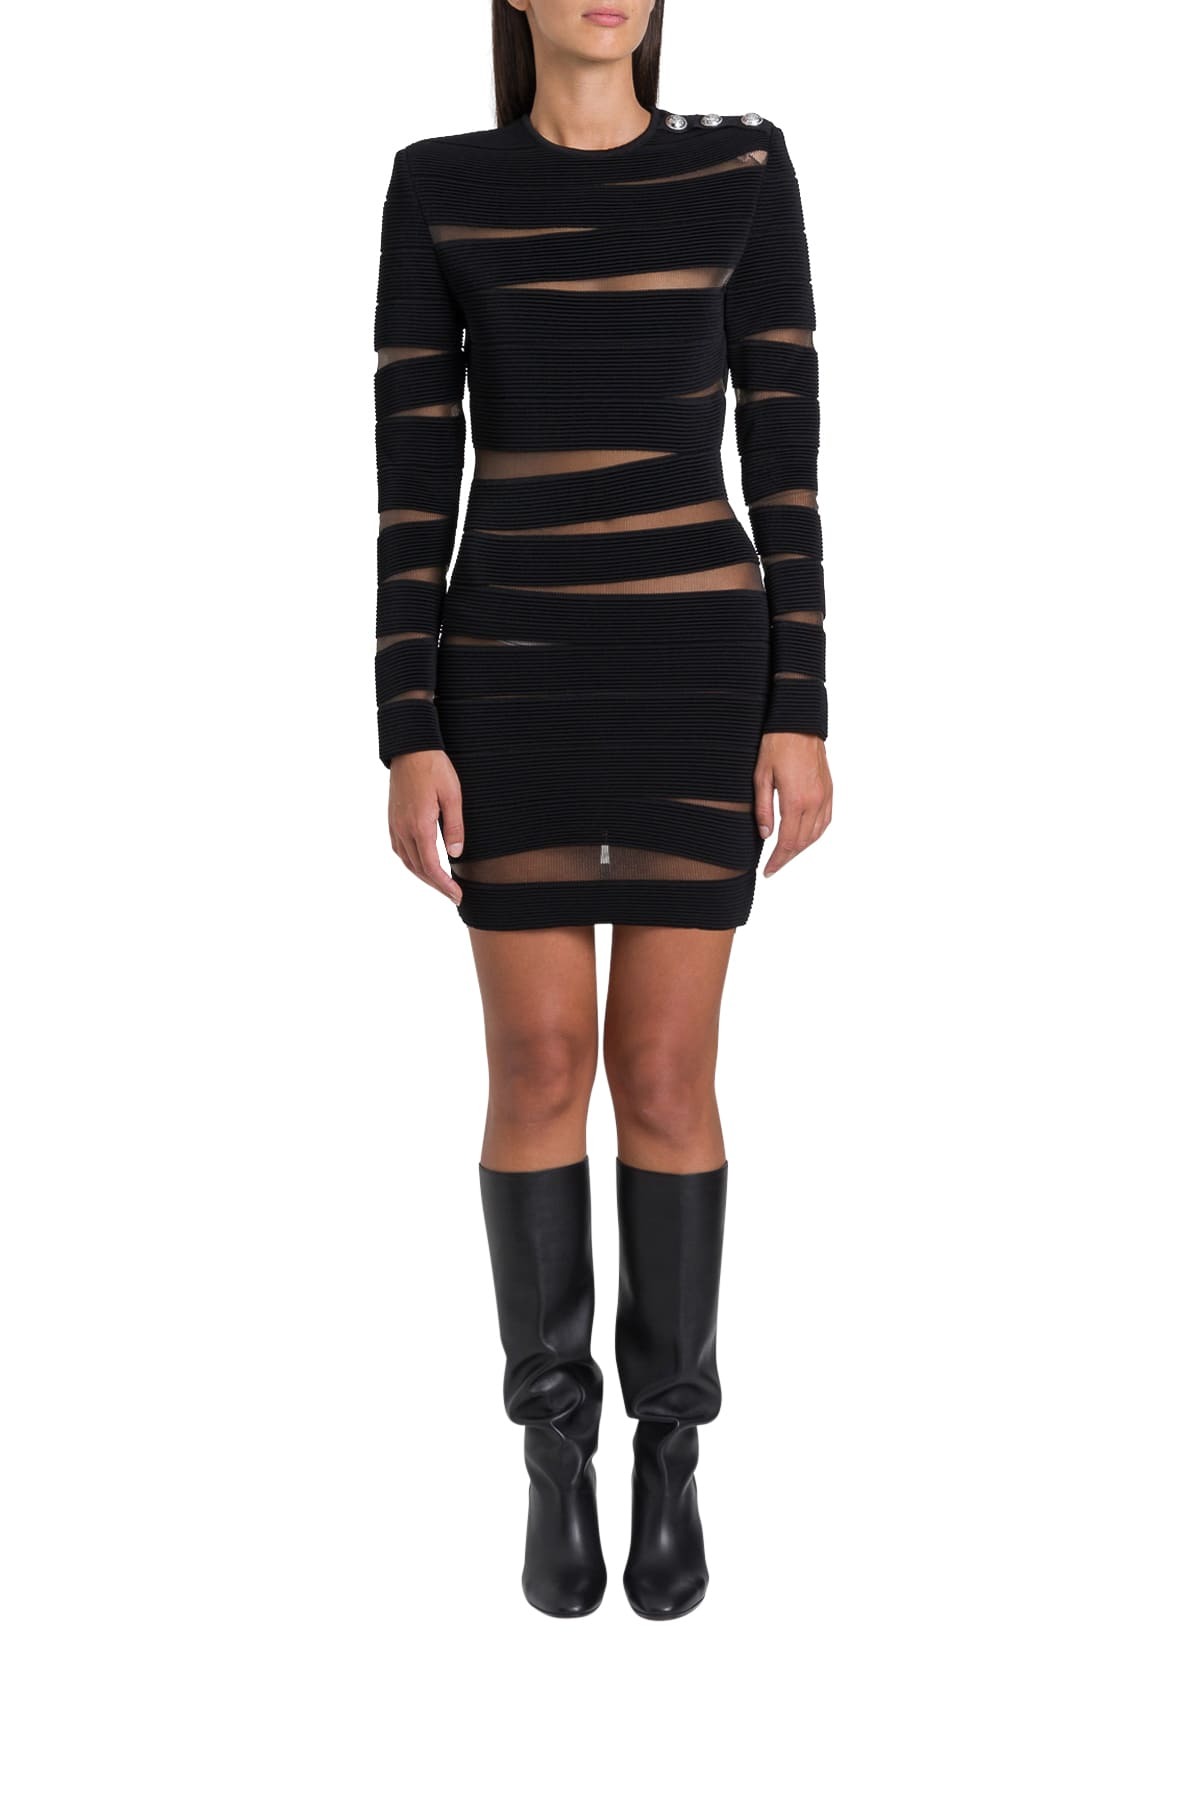 Buy Balmain Cut-out Striped Dress online, shop Balmain with free shipping